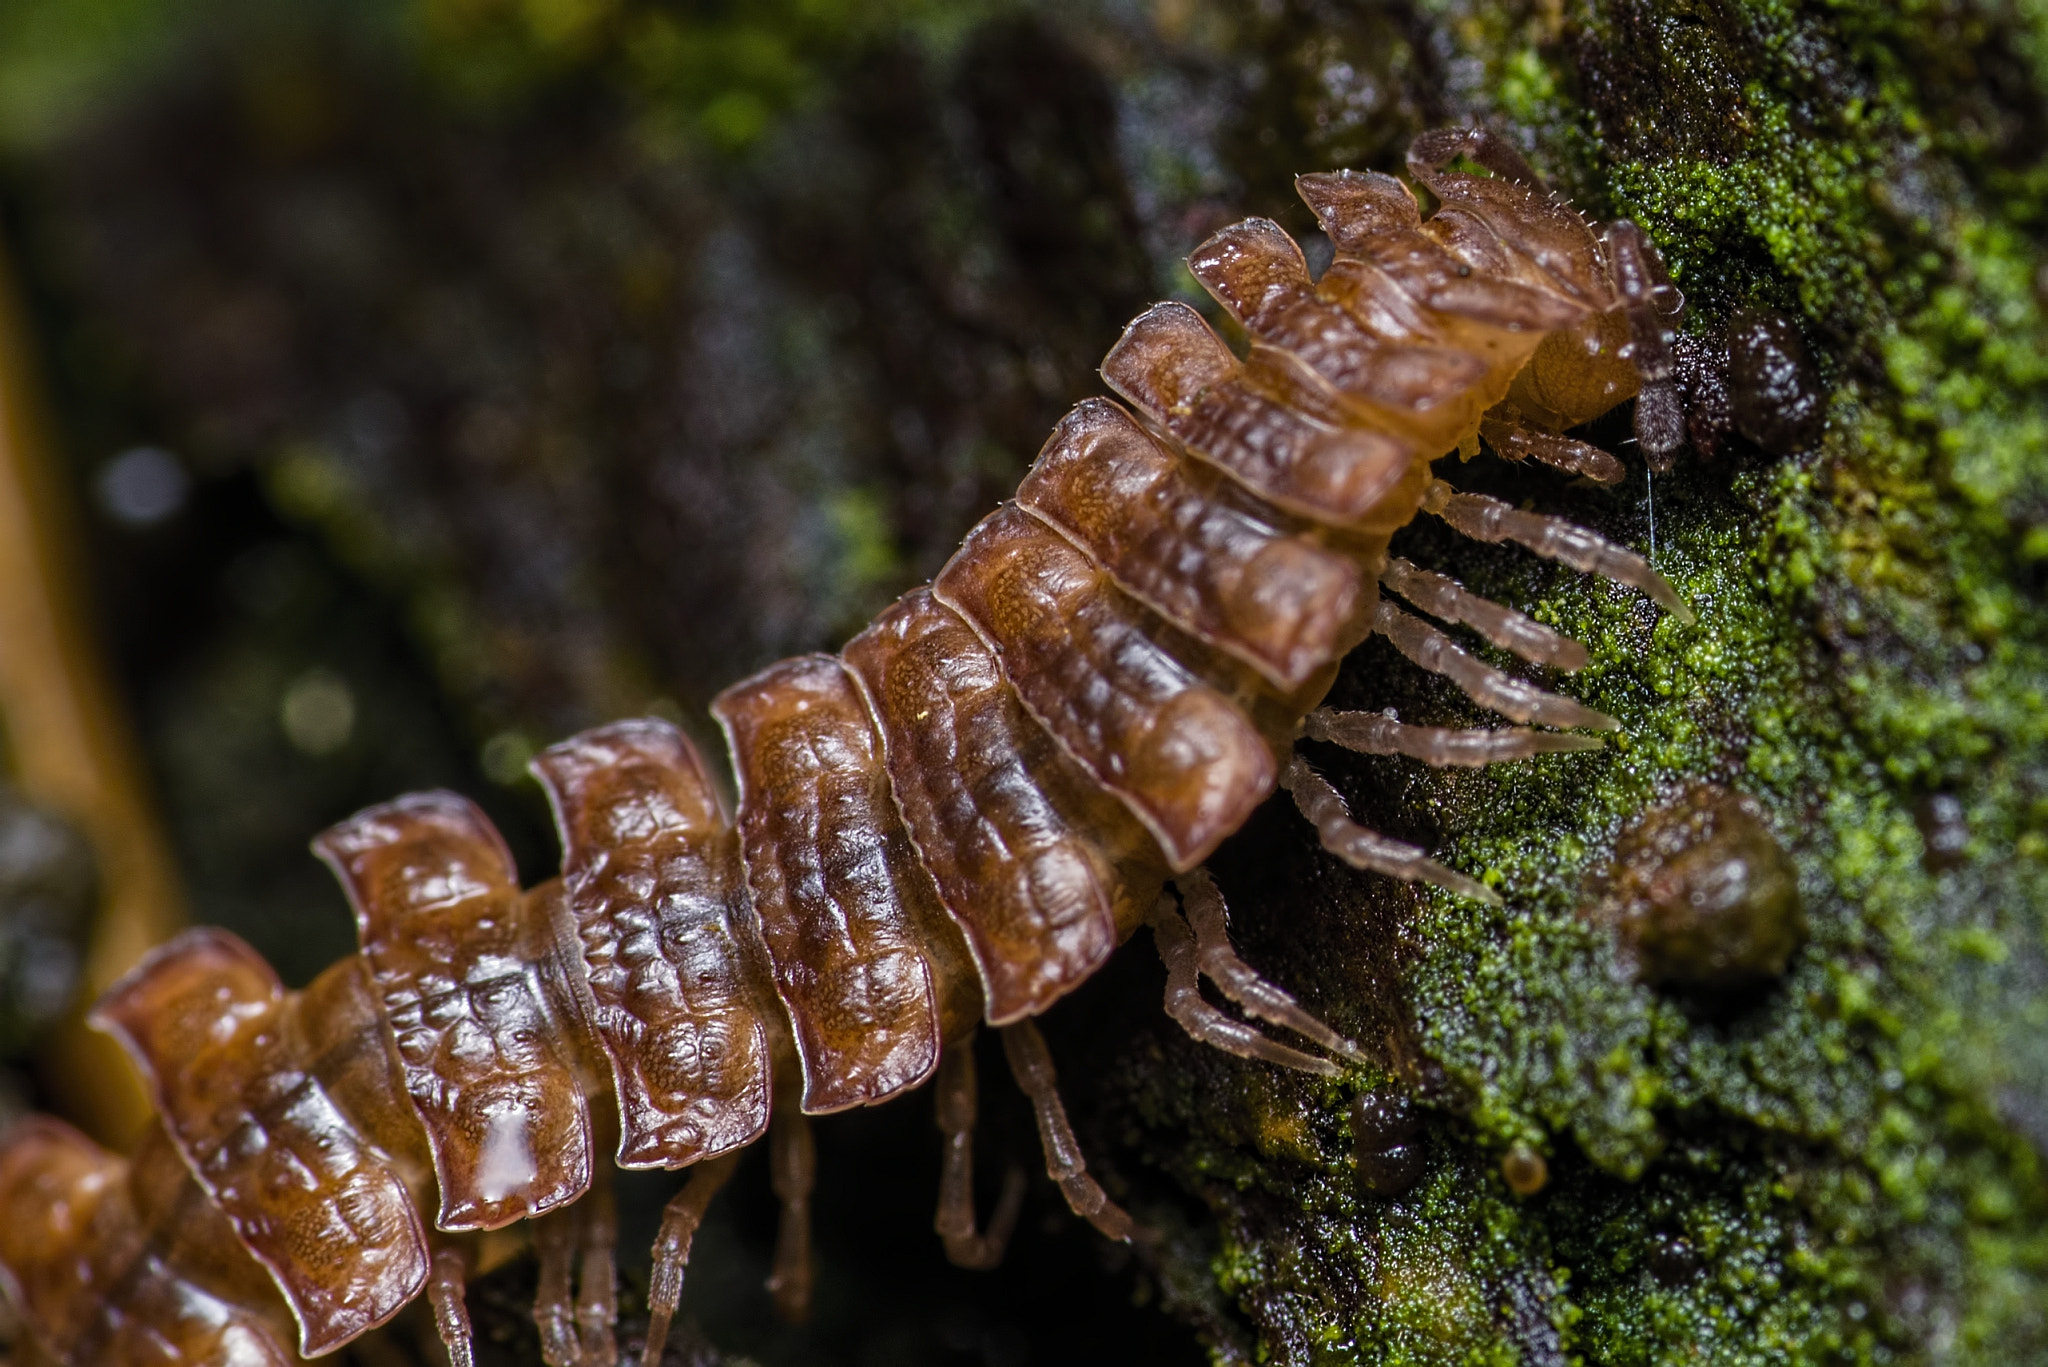 Photograph Centipede by K. Beck on 500px